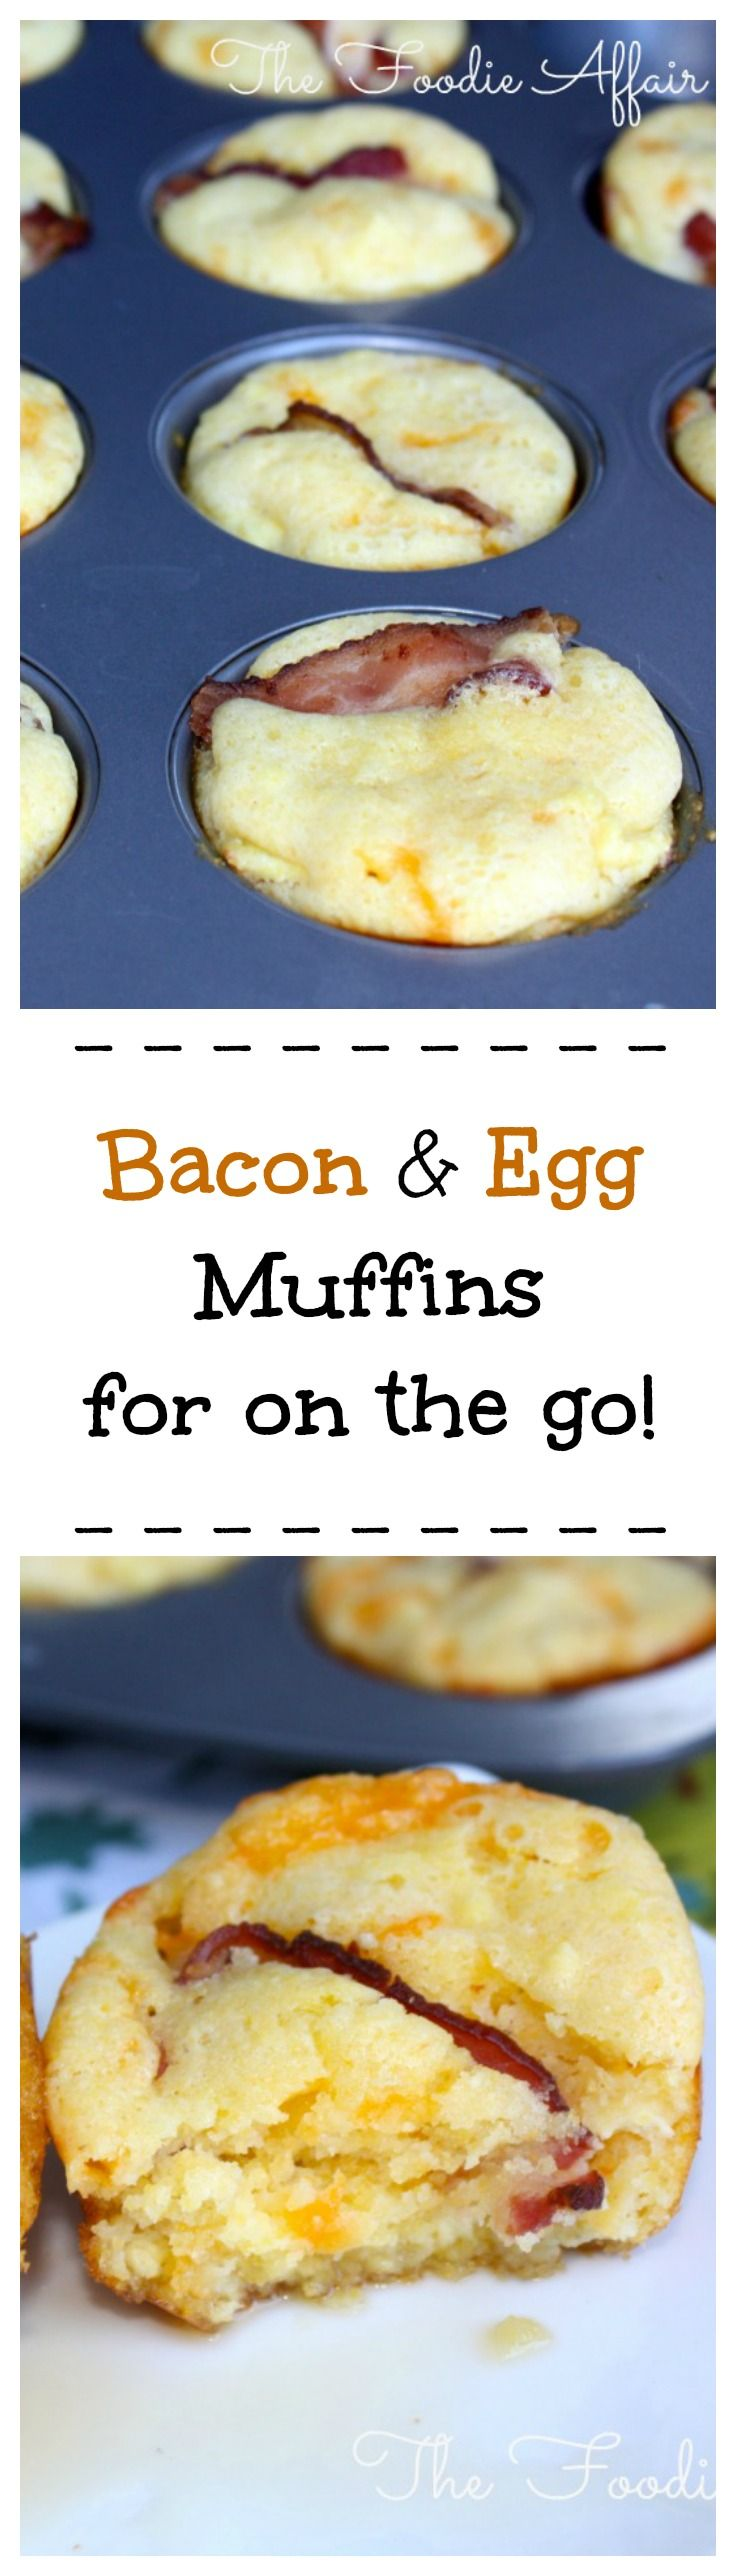 Savory cornmeal muffins with scrambled eggs, bacon, and cheddar cheese baked into the muffins! Delicious grab 'n go bite to eat for on the run! The Foodie Affair